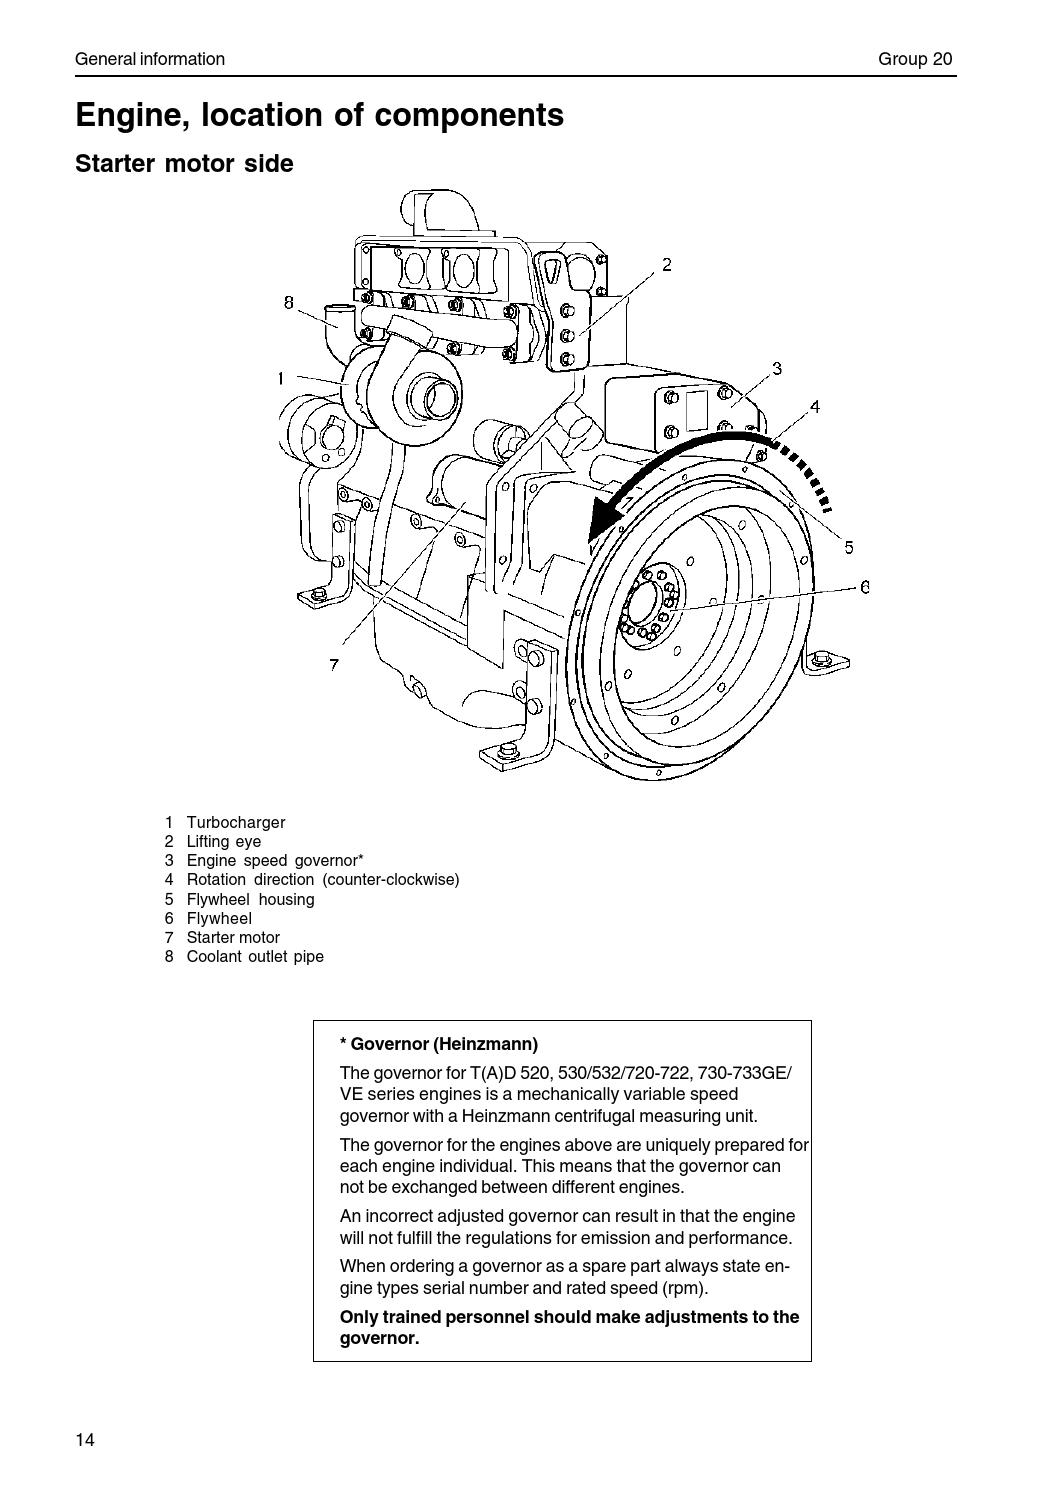 6d22 Manual Download Kawasaki Fd750 Regulator Wiring Diagram Array Volvo Work Shop 520 733 By Power Generation Issuu Rh